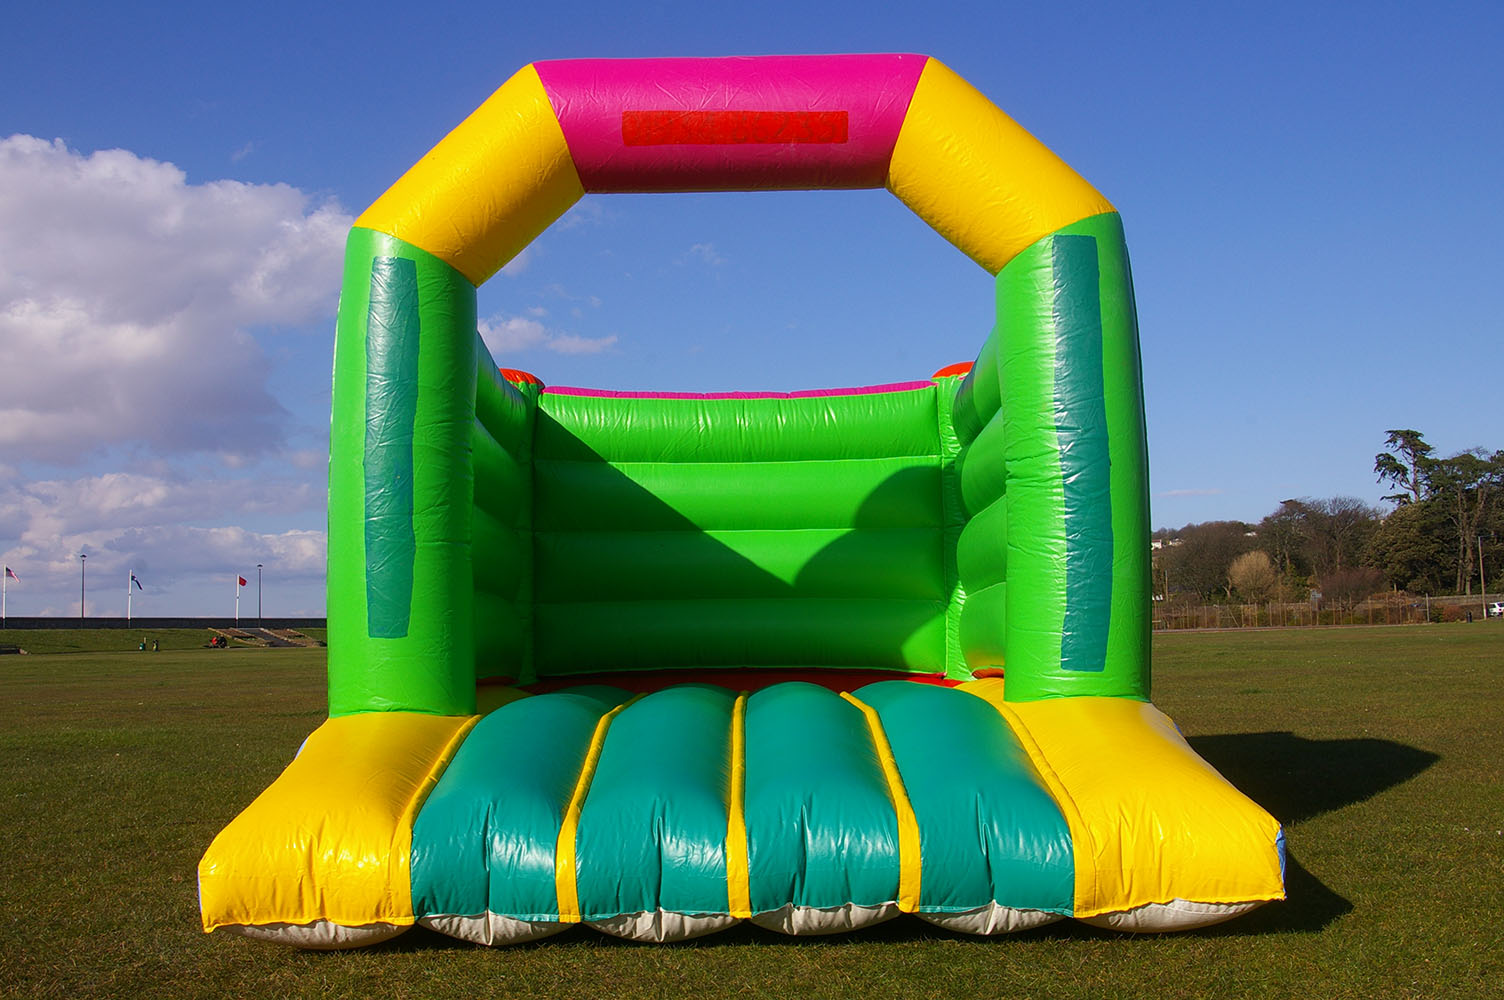 This is one of our smaller bouncy castles which is ideal for smaller gardens or halls. It's super bouncy and customisable with banners to give your event a special theme. Suitable for children up to 11 years.